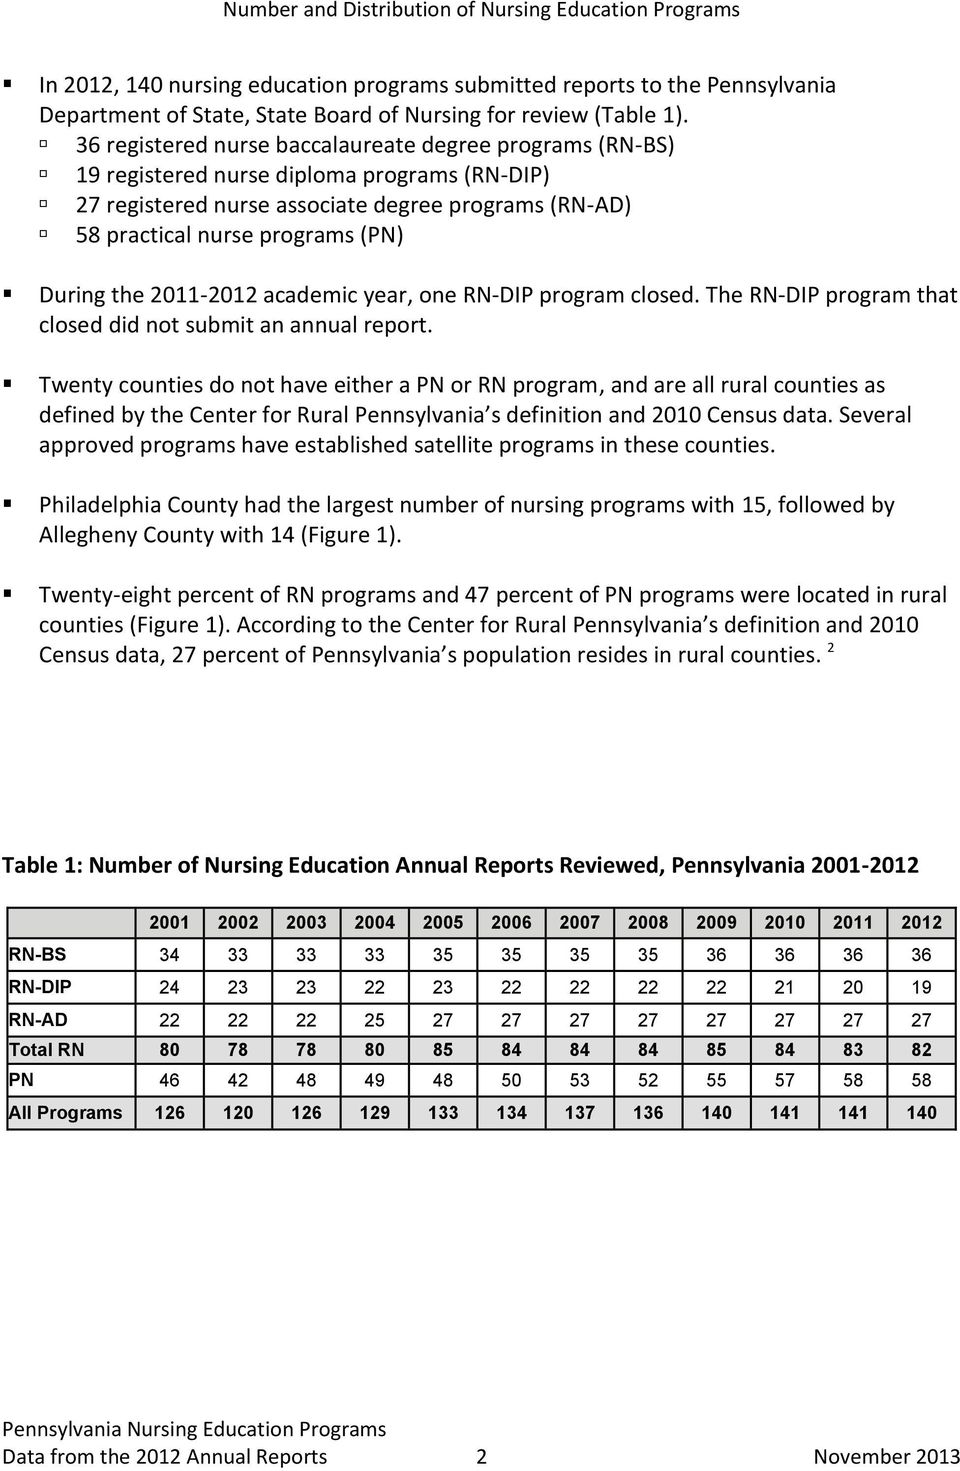 the 2011-2012 academic year, one RN-DIP program closed. The RN-DIP program that closed did not submit an annual report.